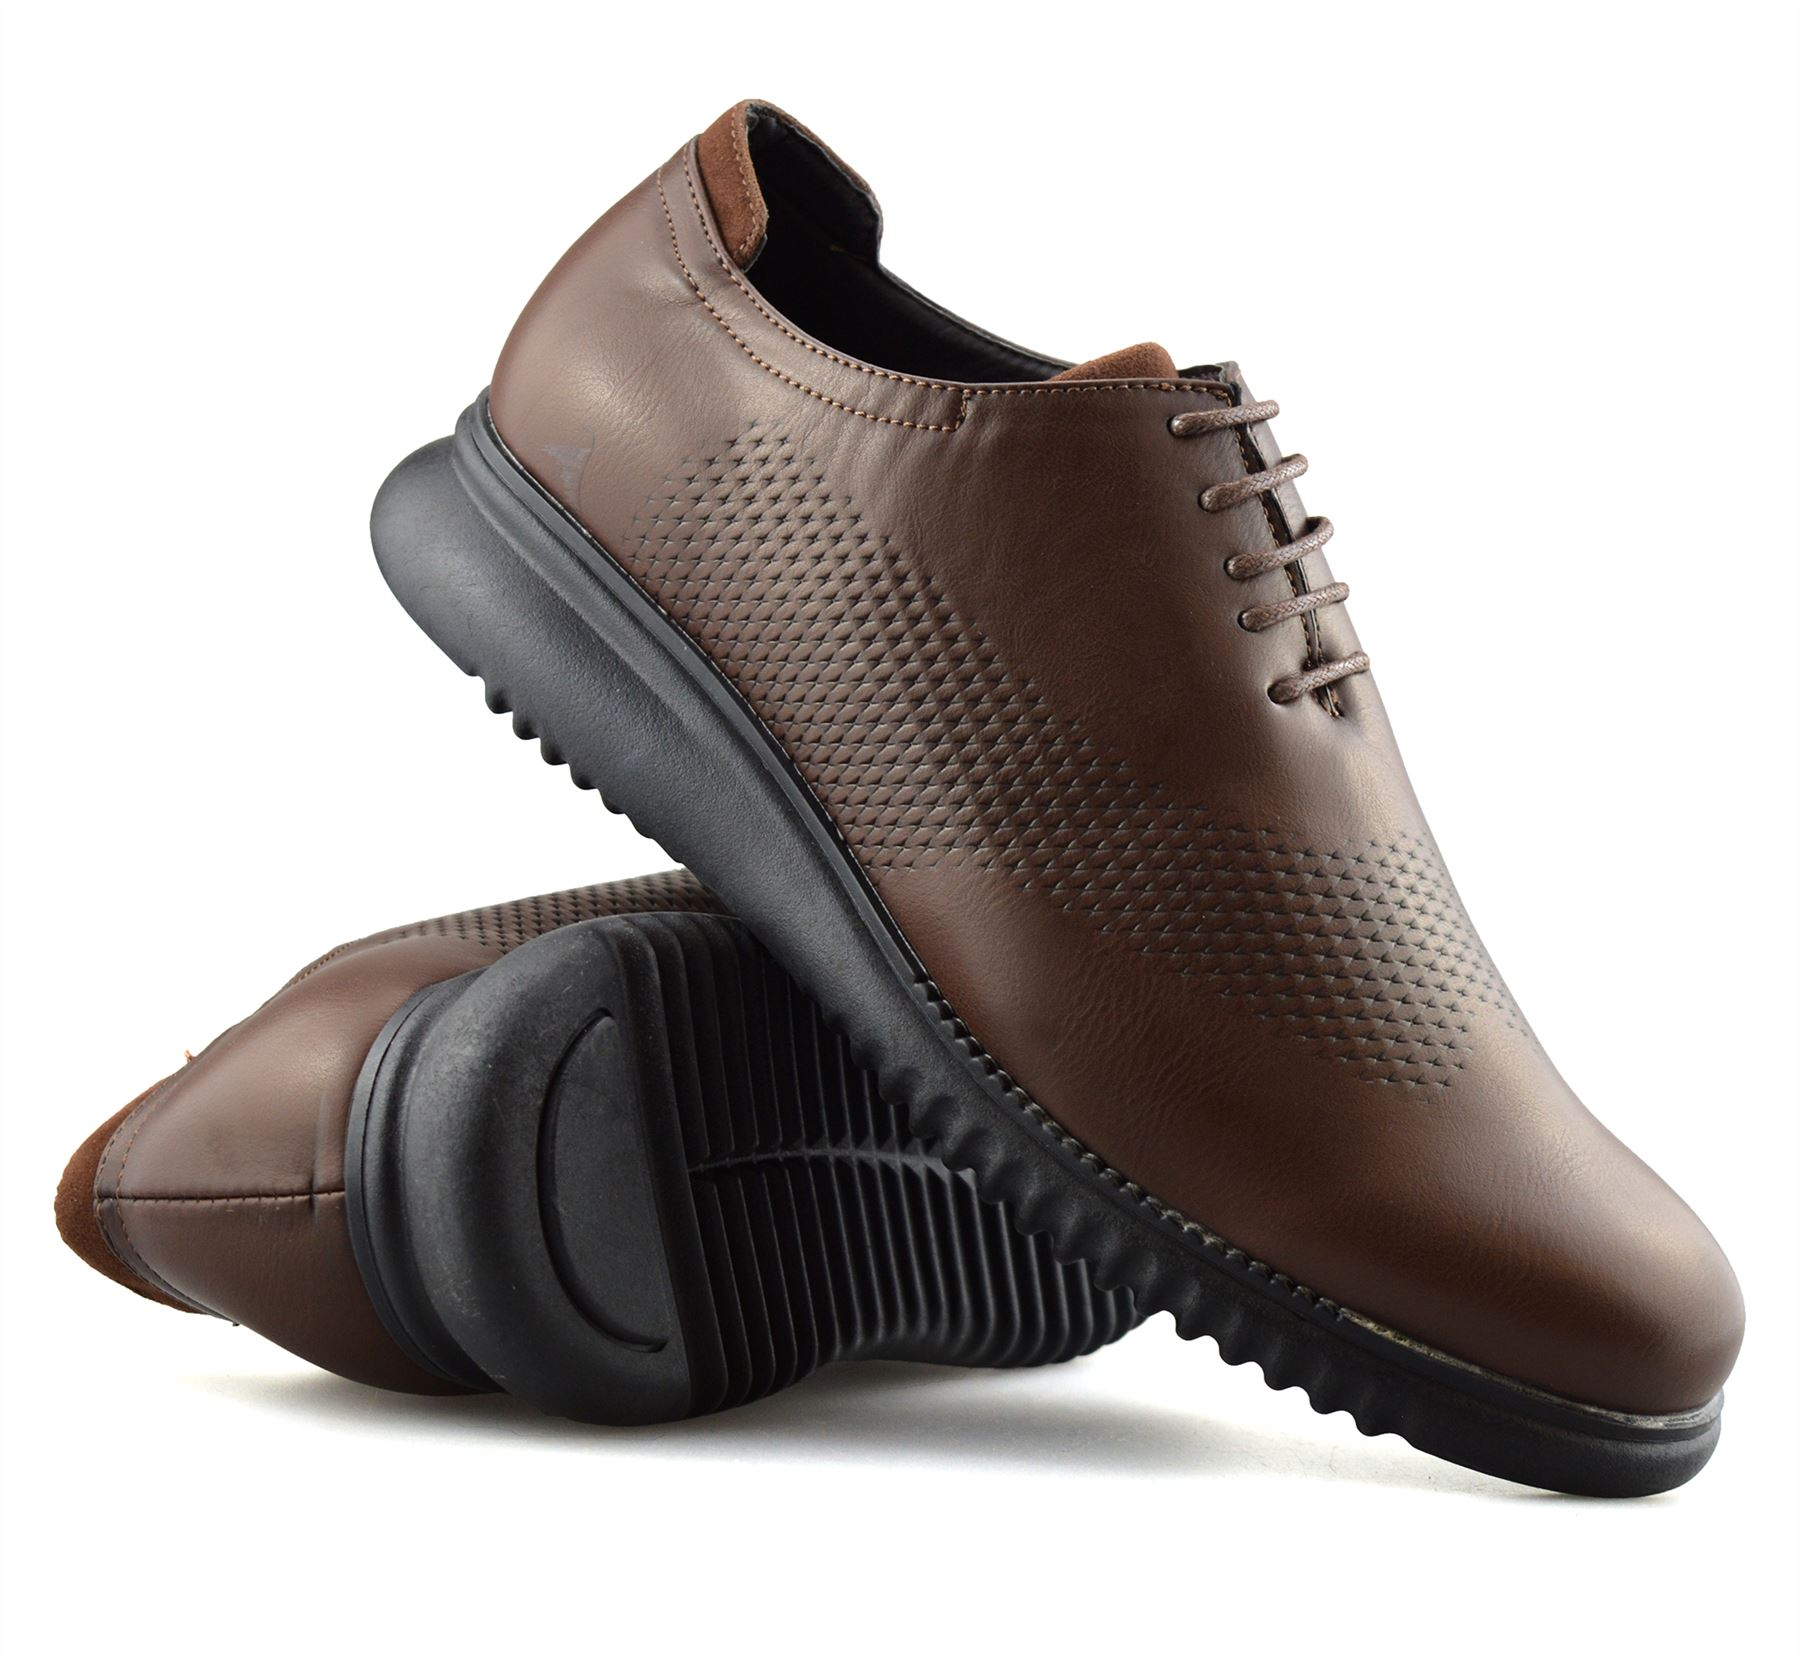 Mens-Casual-Smart-Lace-Up-Oxford-Brogue-Walking-Work-Office-Trainers-Shoes-Size thumbnail 23